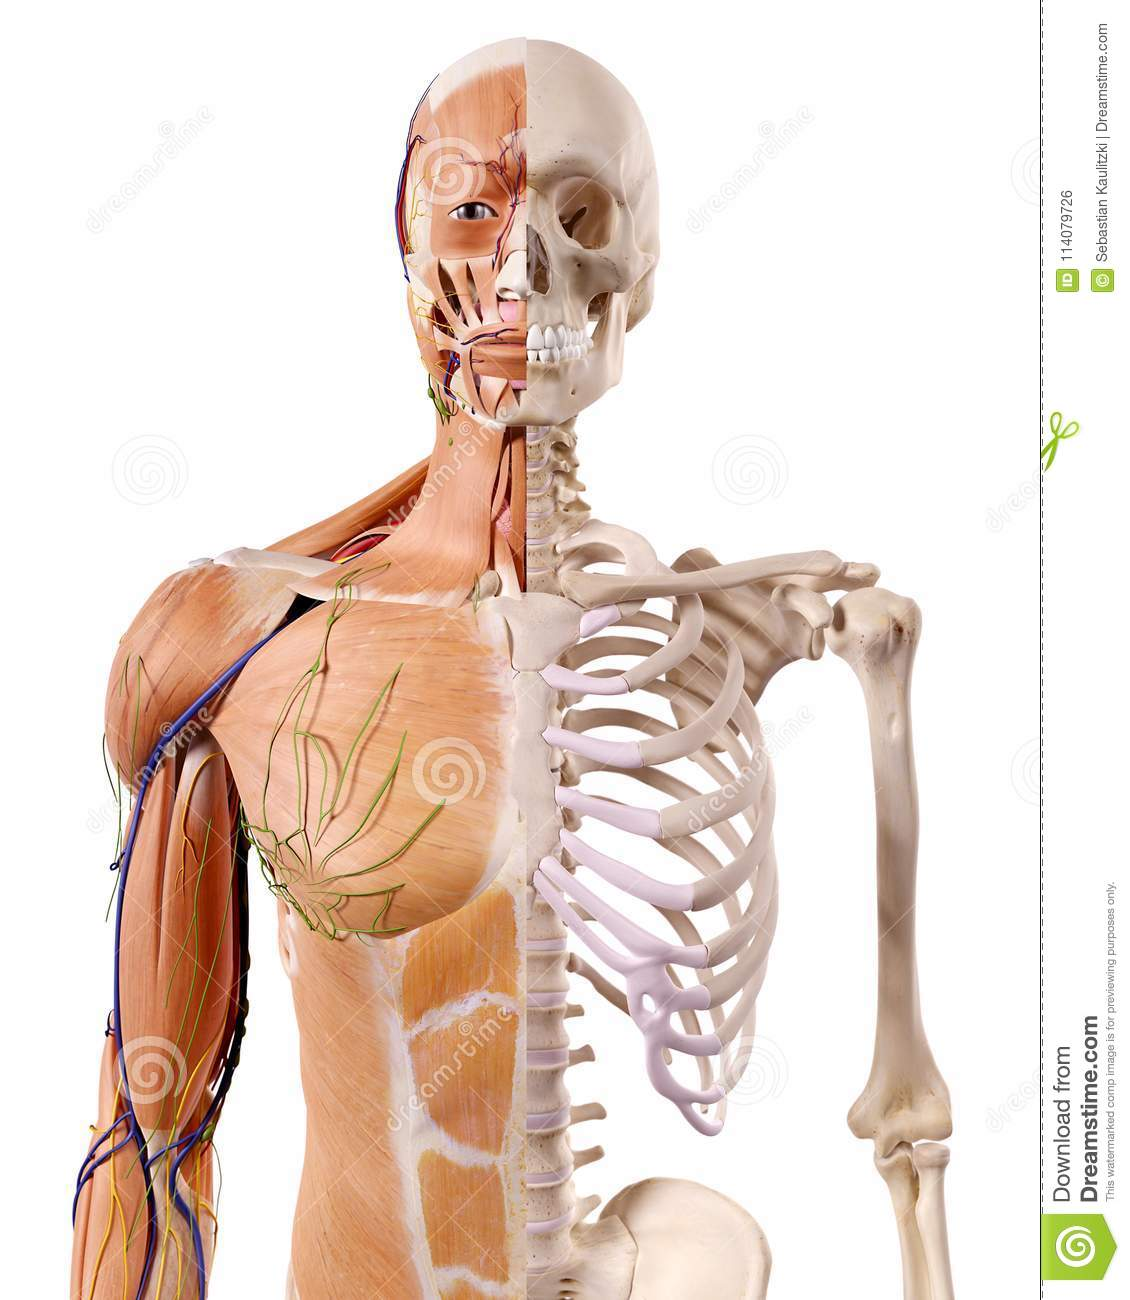 the muscles and skeleton